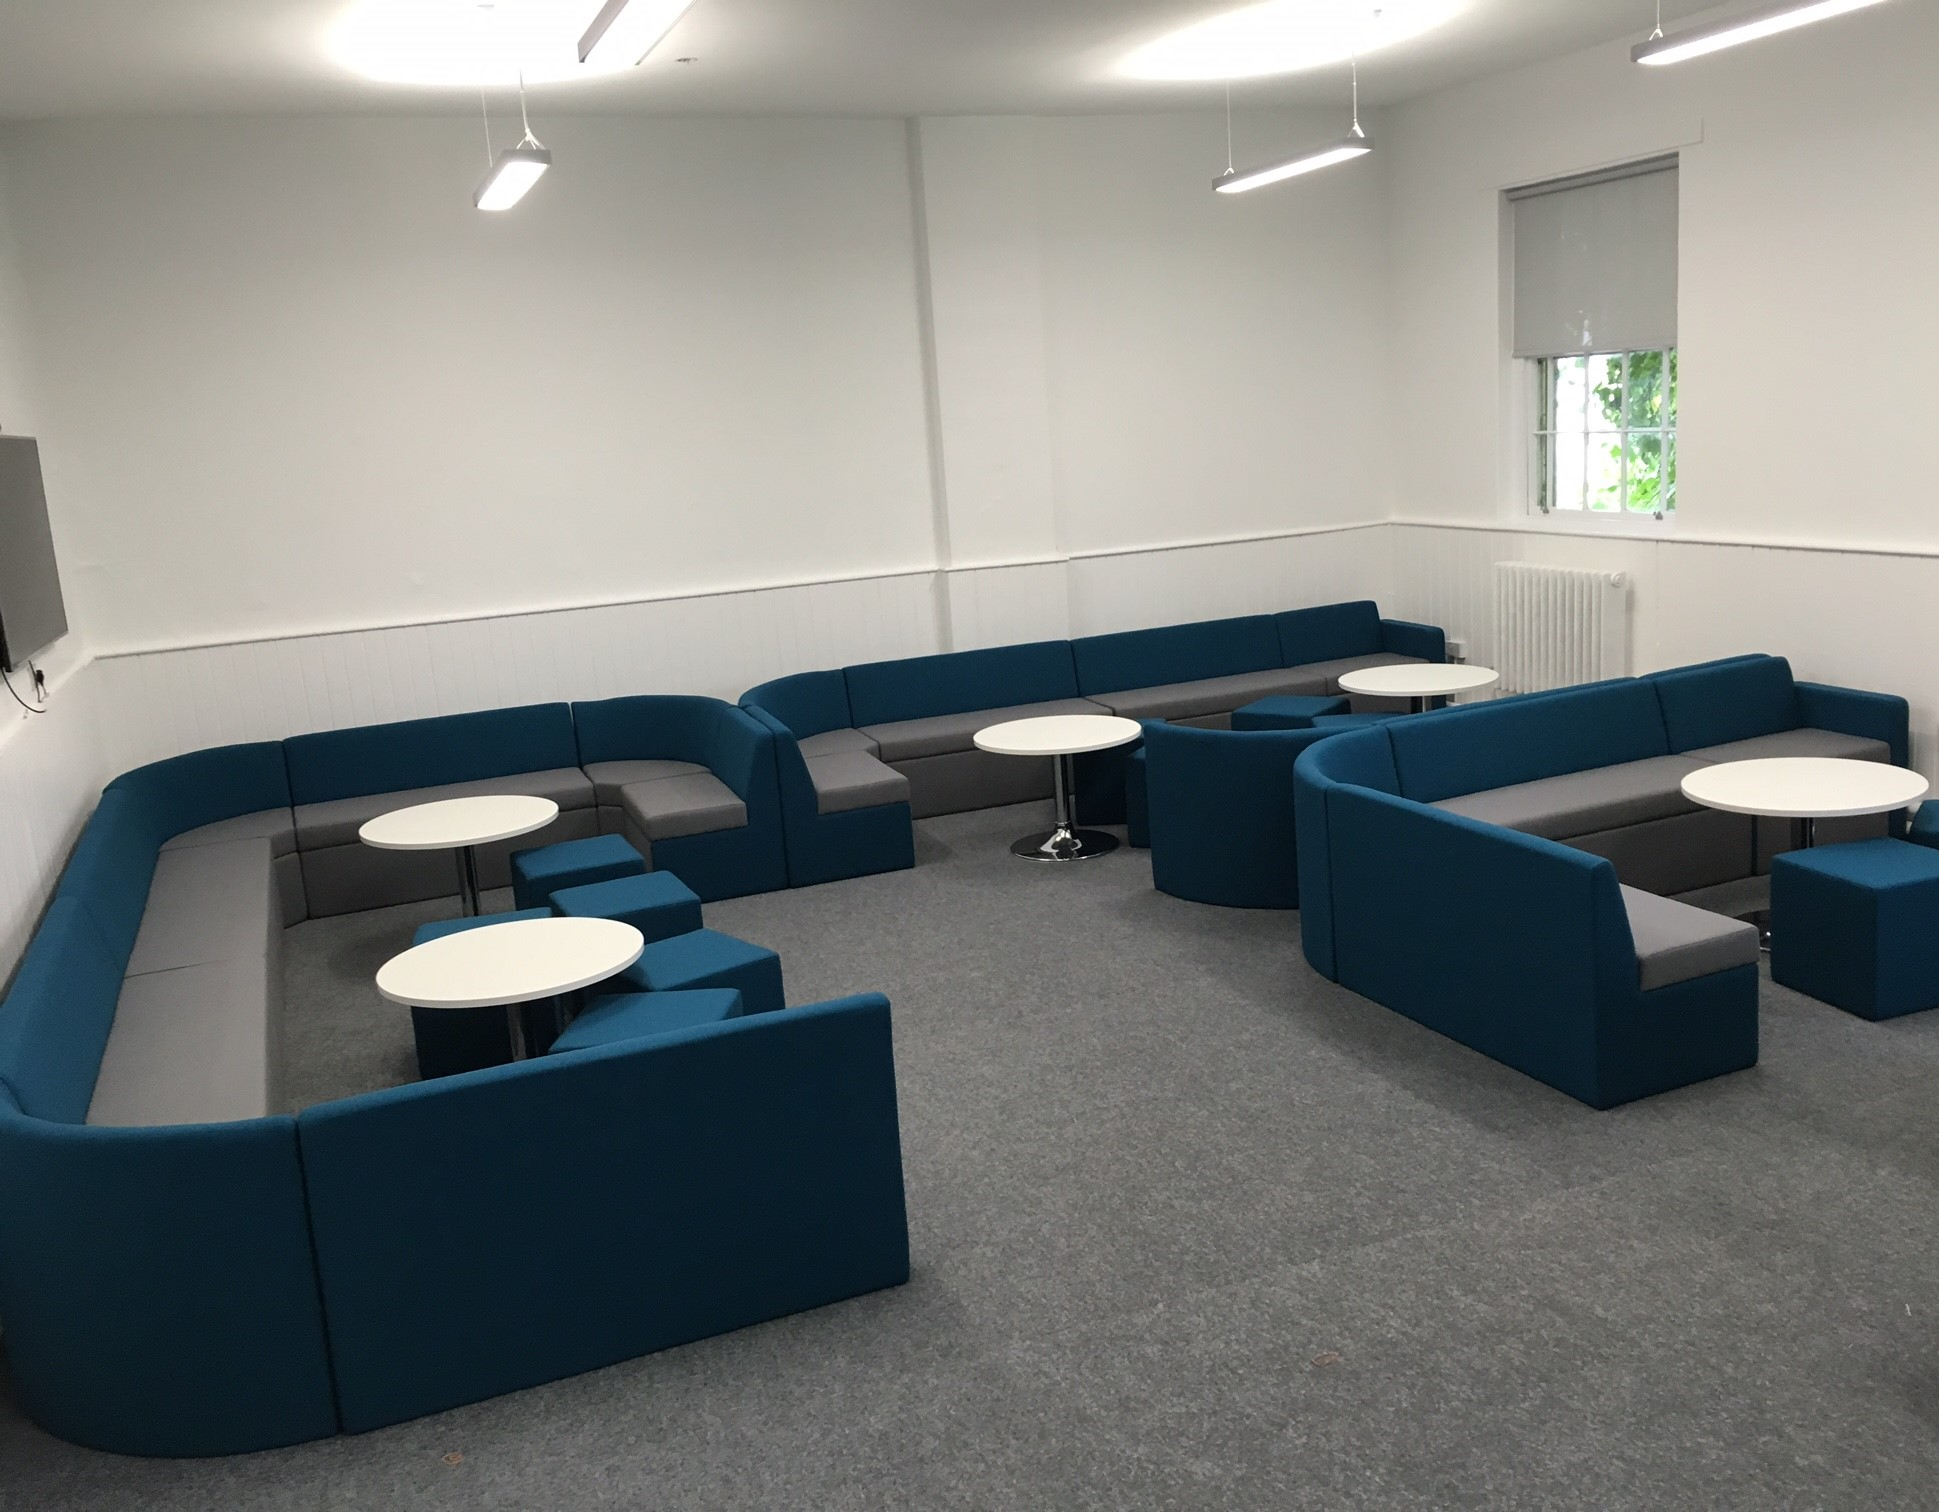 Far Soft Modular Seating Blue and Grey